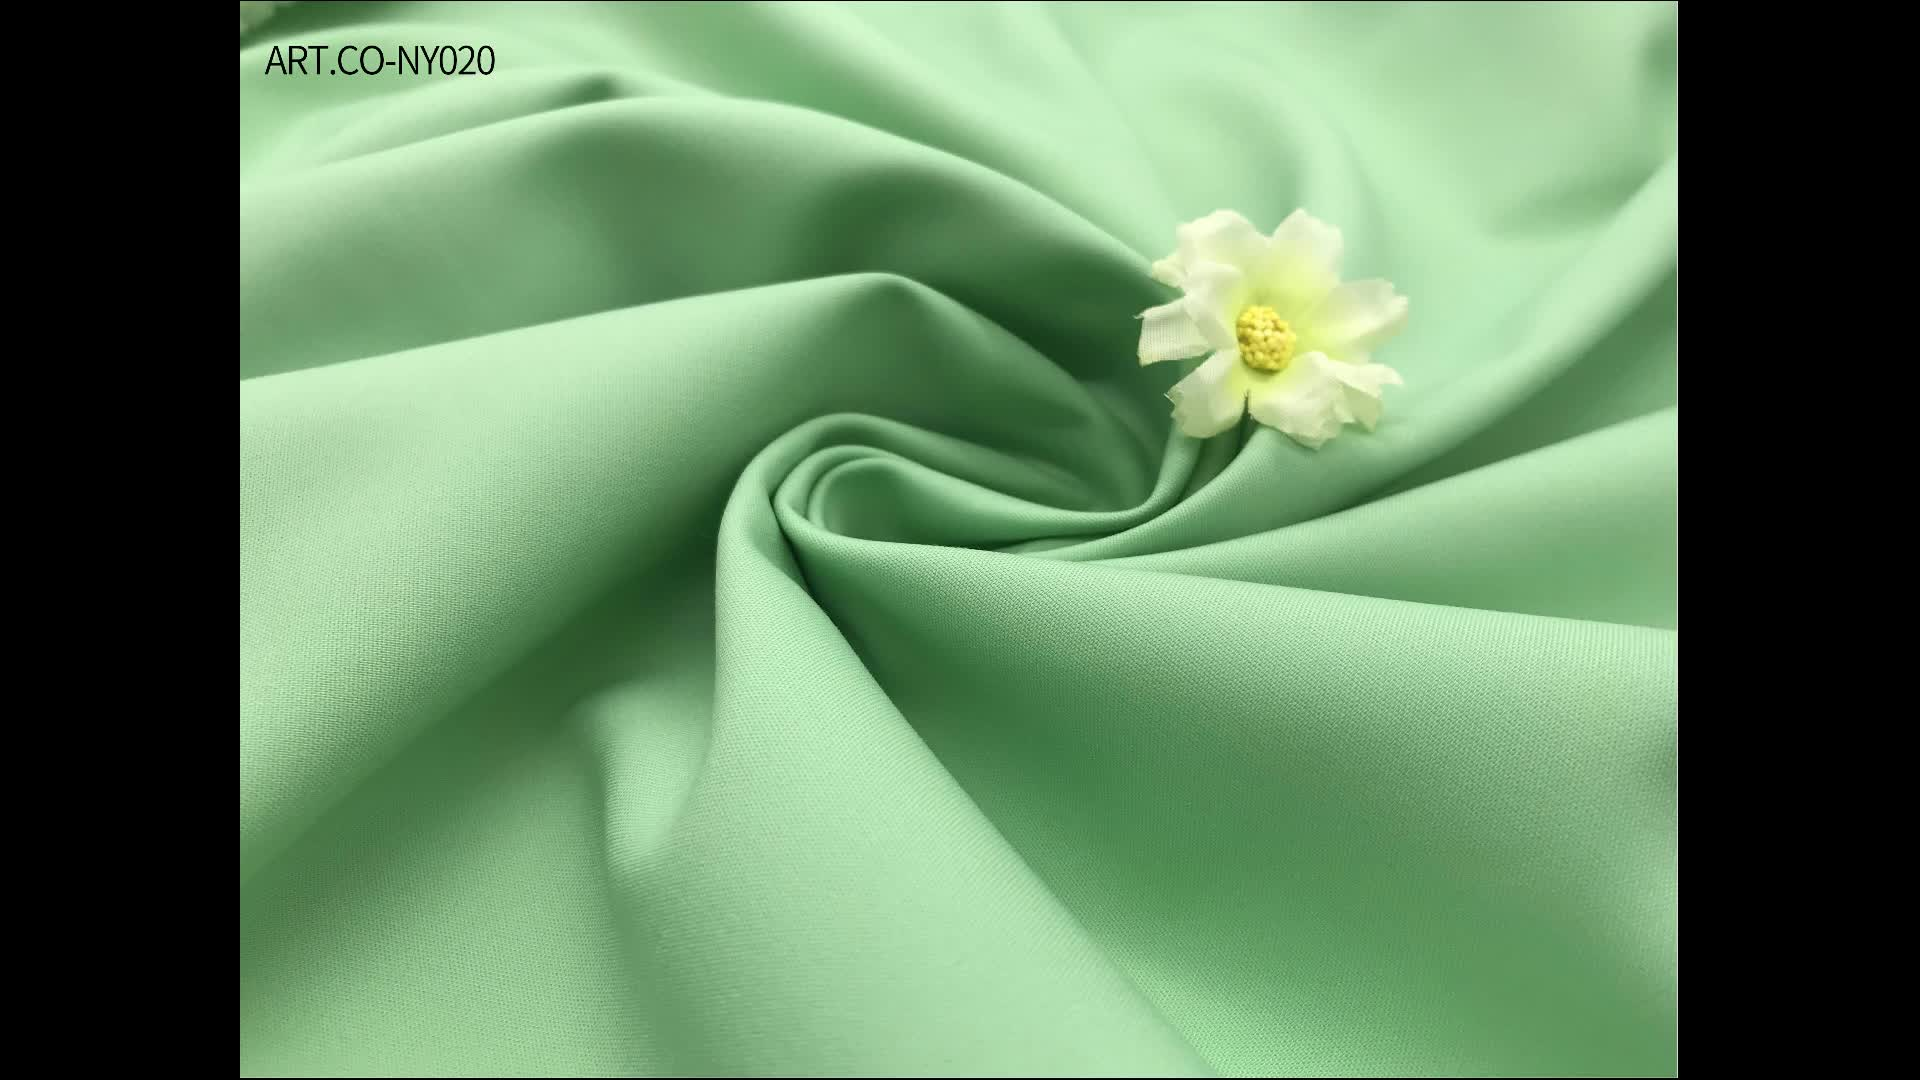 latest style solid dyed woven plain nylon cotton blend fabric for women clothing